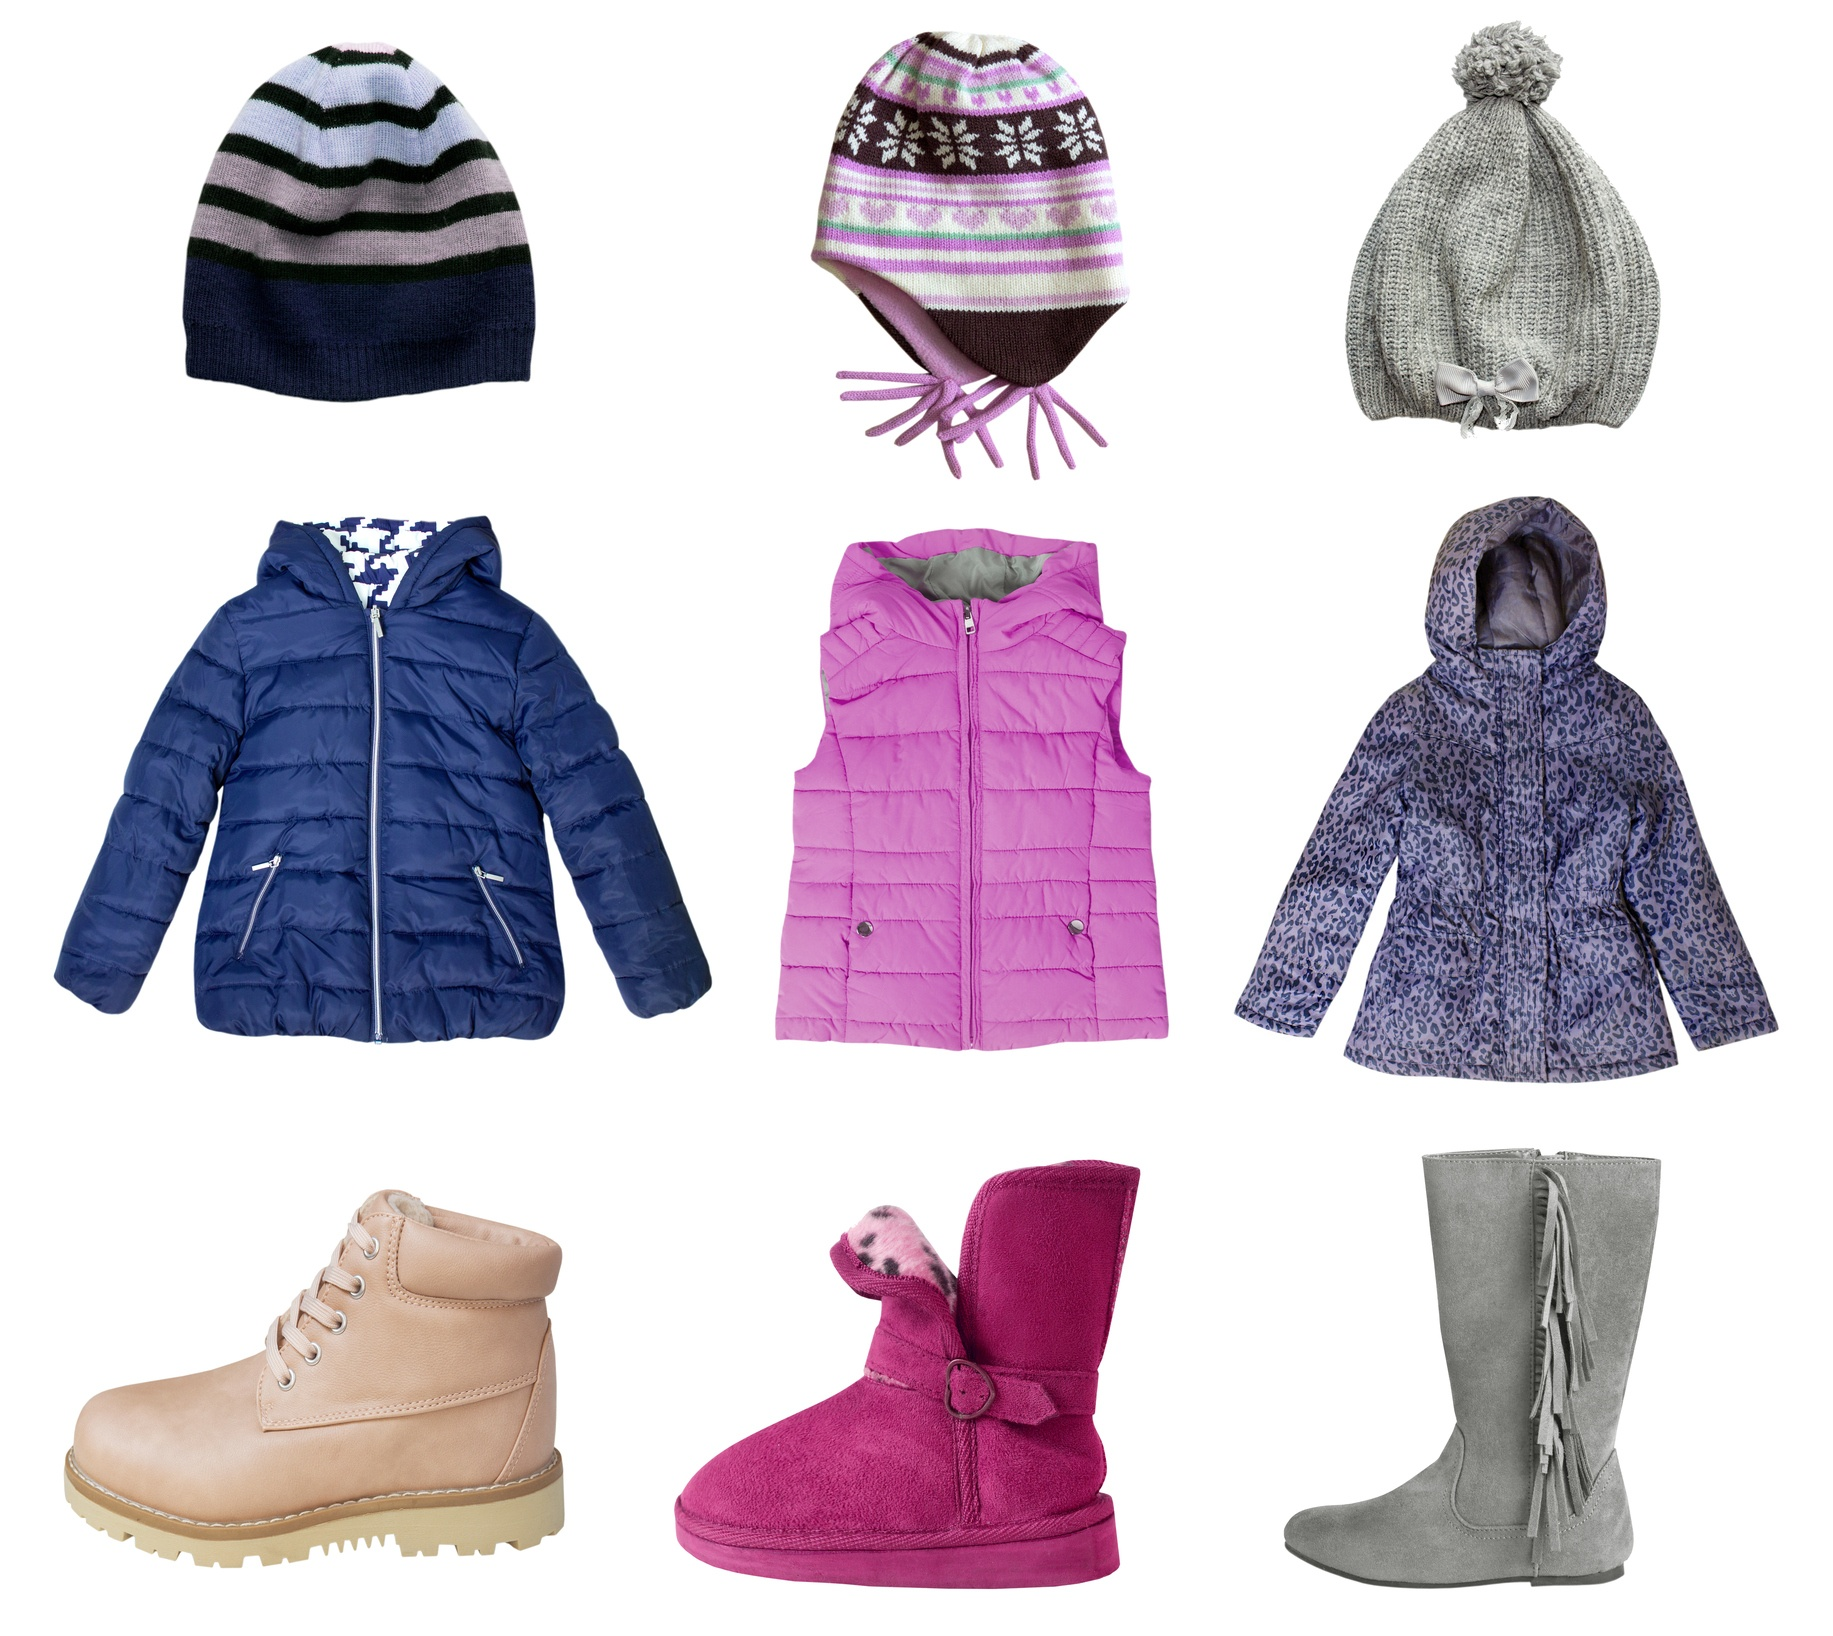 Buy Winter Gear in February + Cook Portable Warehouses